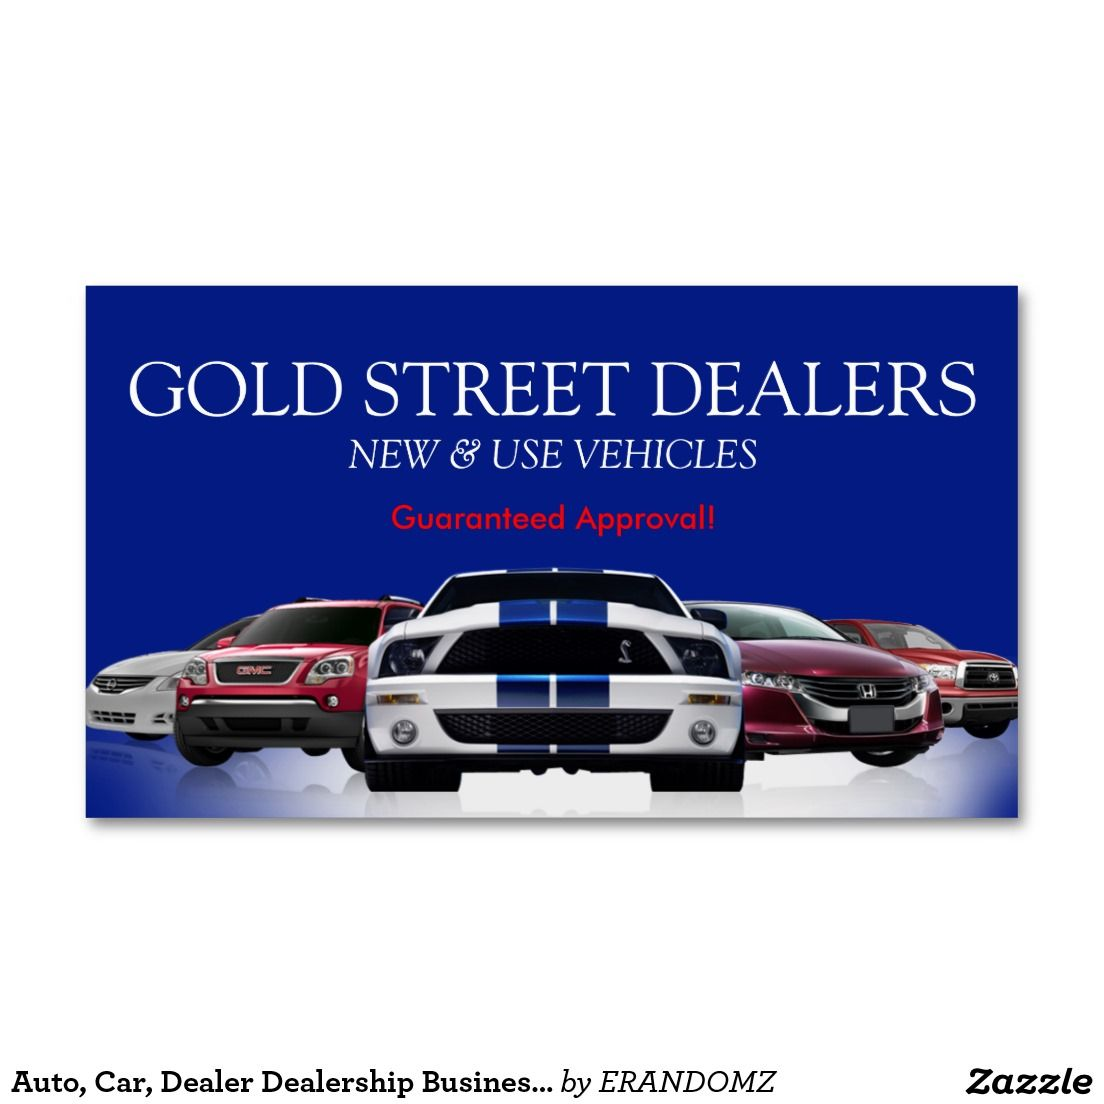 Auto, Car, Dealer Dealership Business Card | Business cards and ...